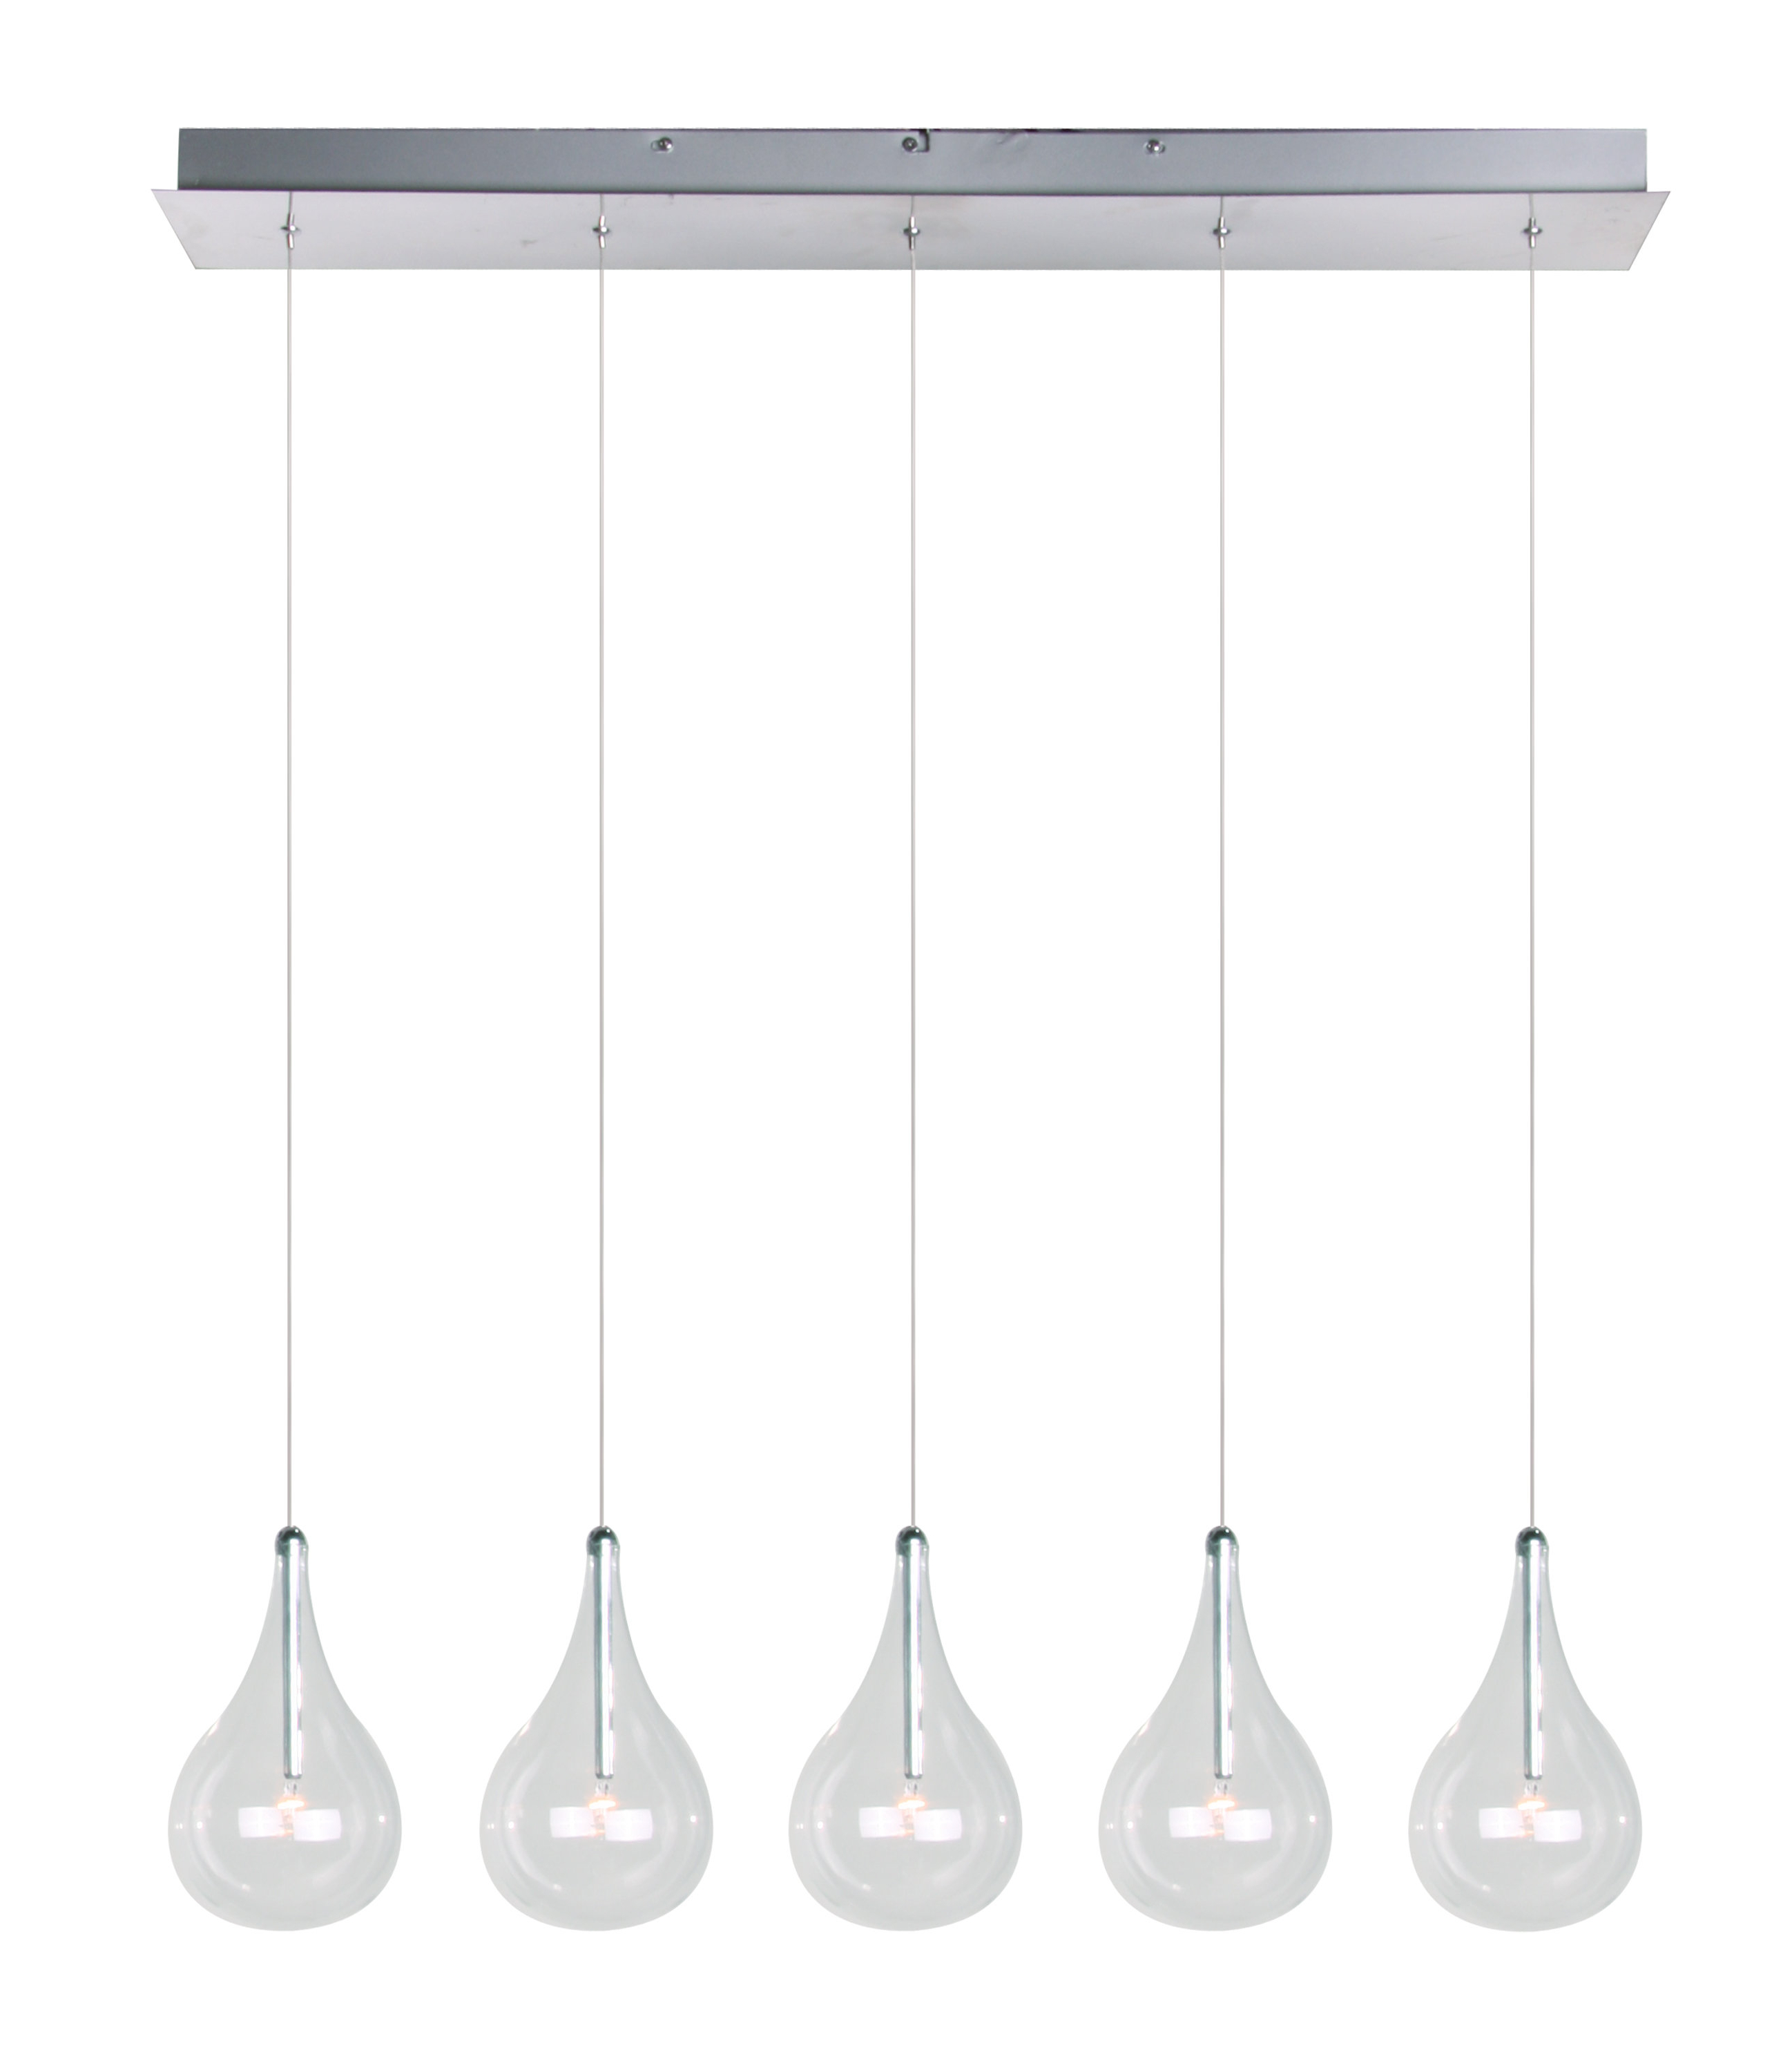 Neal 5 Light Kitchen Island Teardrop Pendant Pertaining To Well Liked Neal 5 Light Kitchen Island Teardrop Pendants (View 7 of 20)